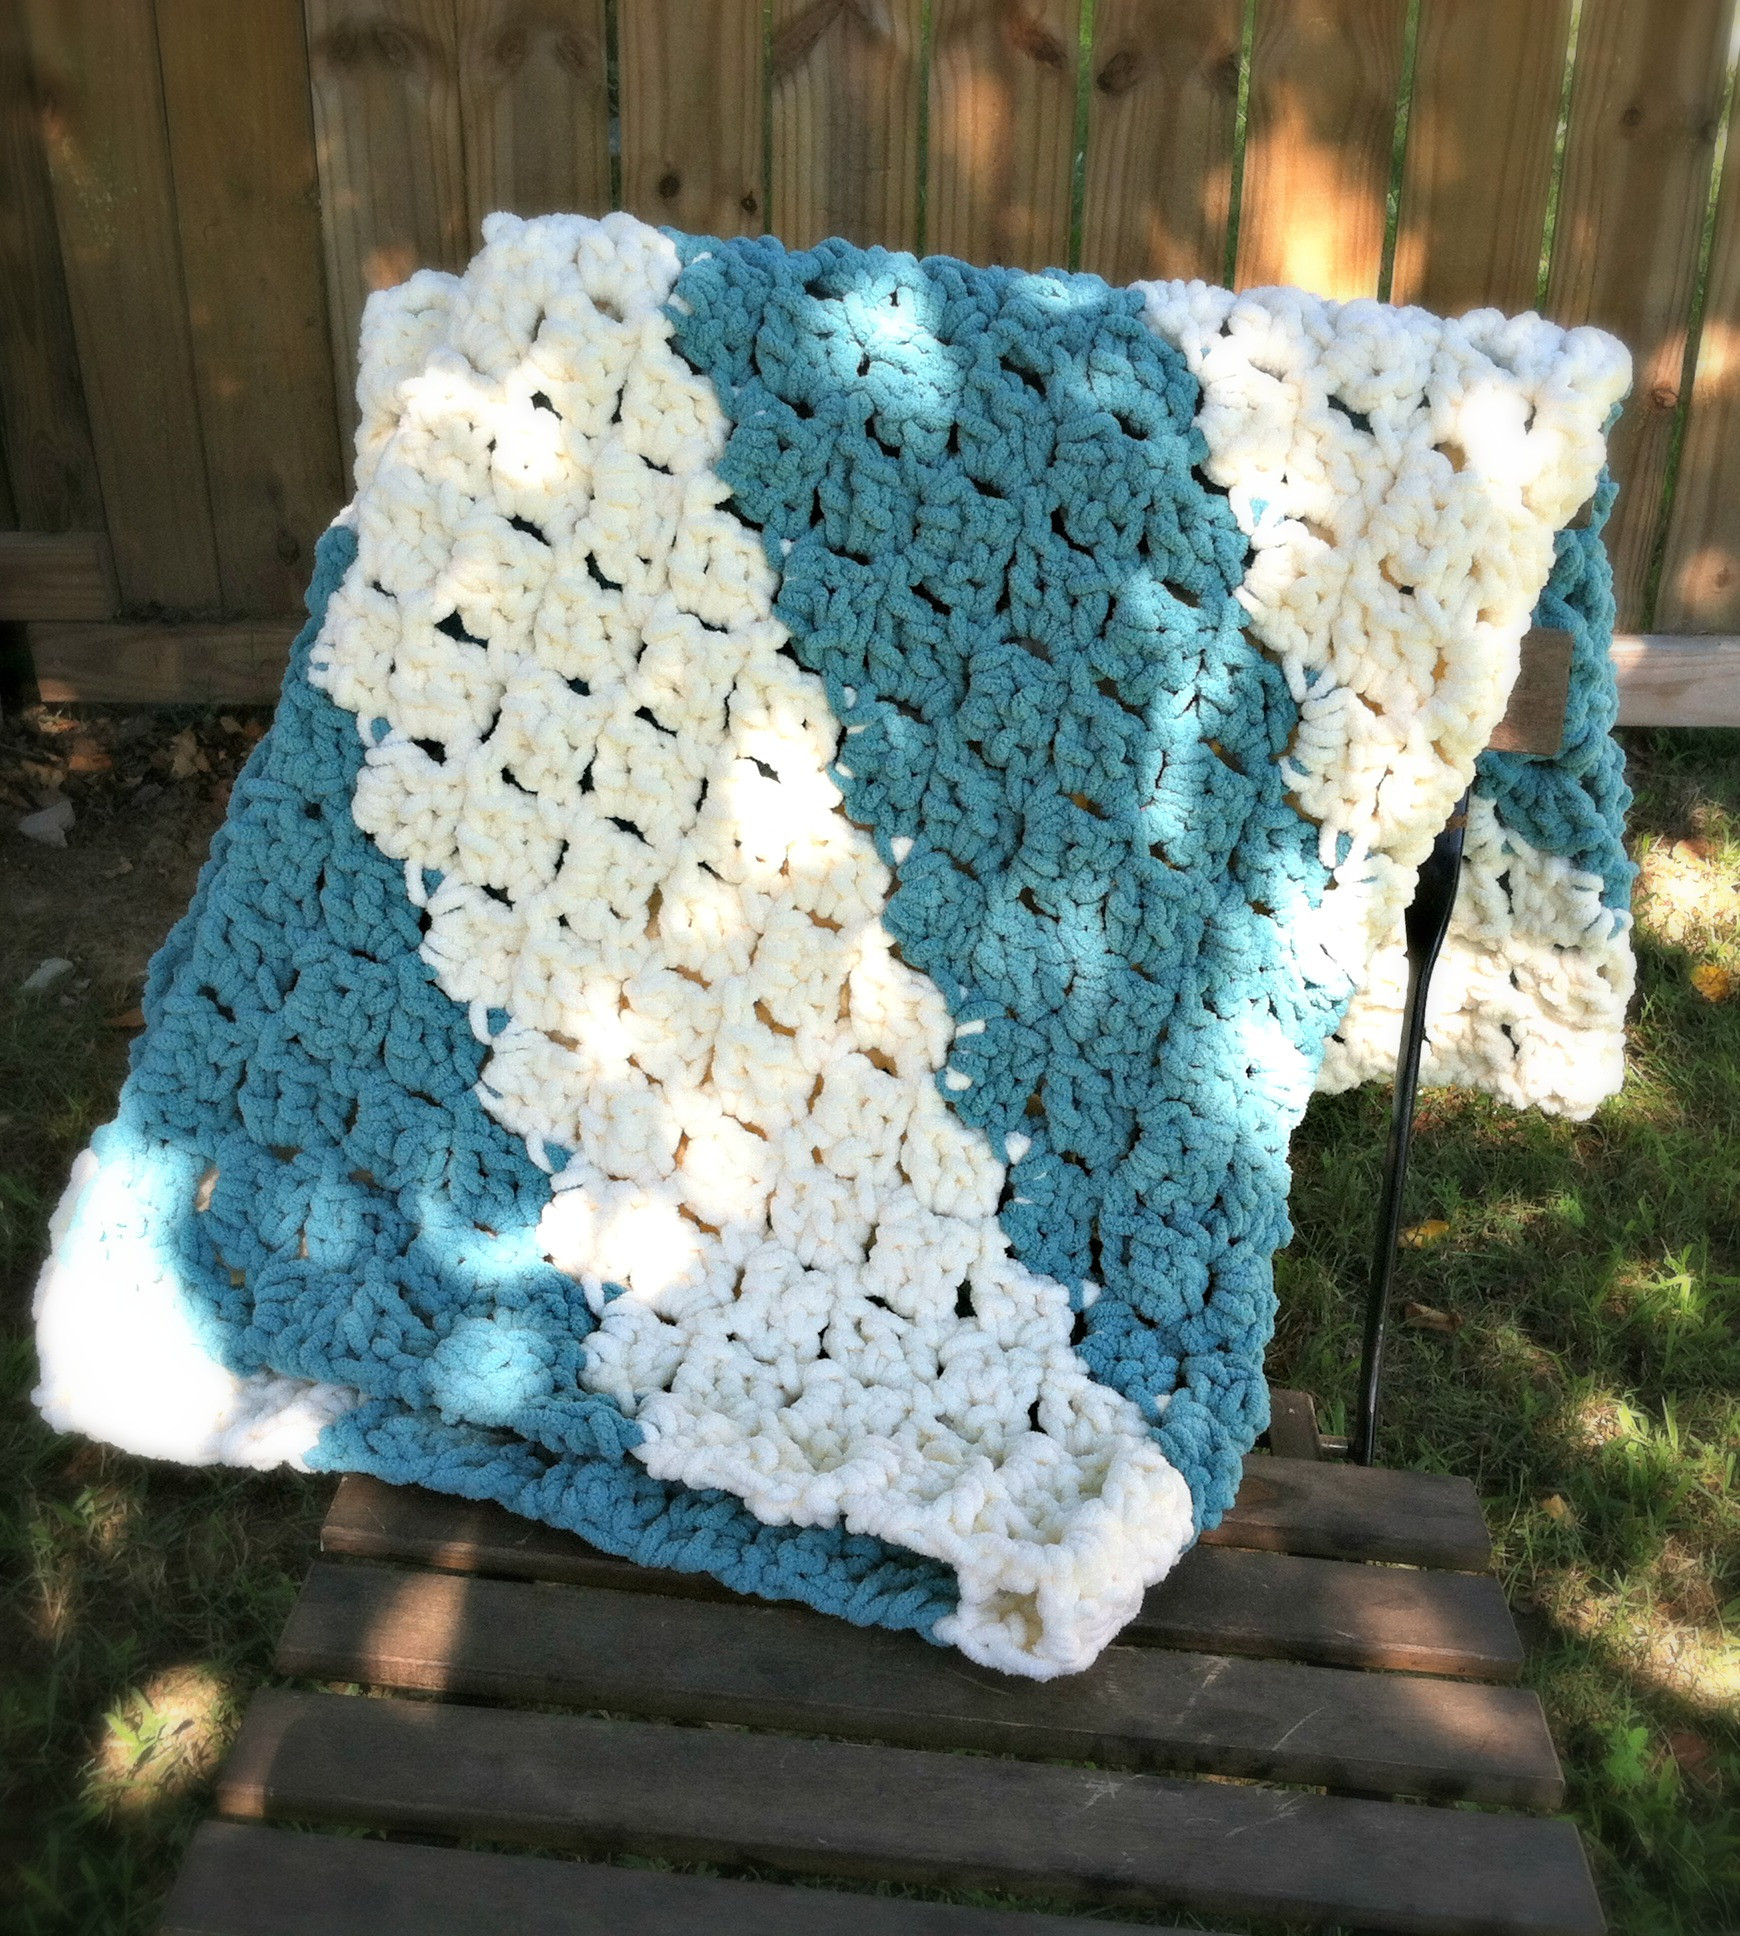 Best Of Quick and Easy Baby Blanket Free Crochet Pattern Easiest Crochet Blanket Of New 50 Images Easiest Crochet Blanket